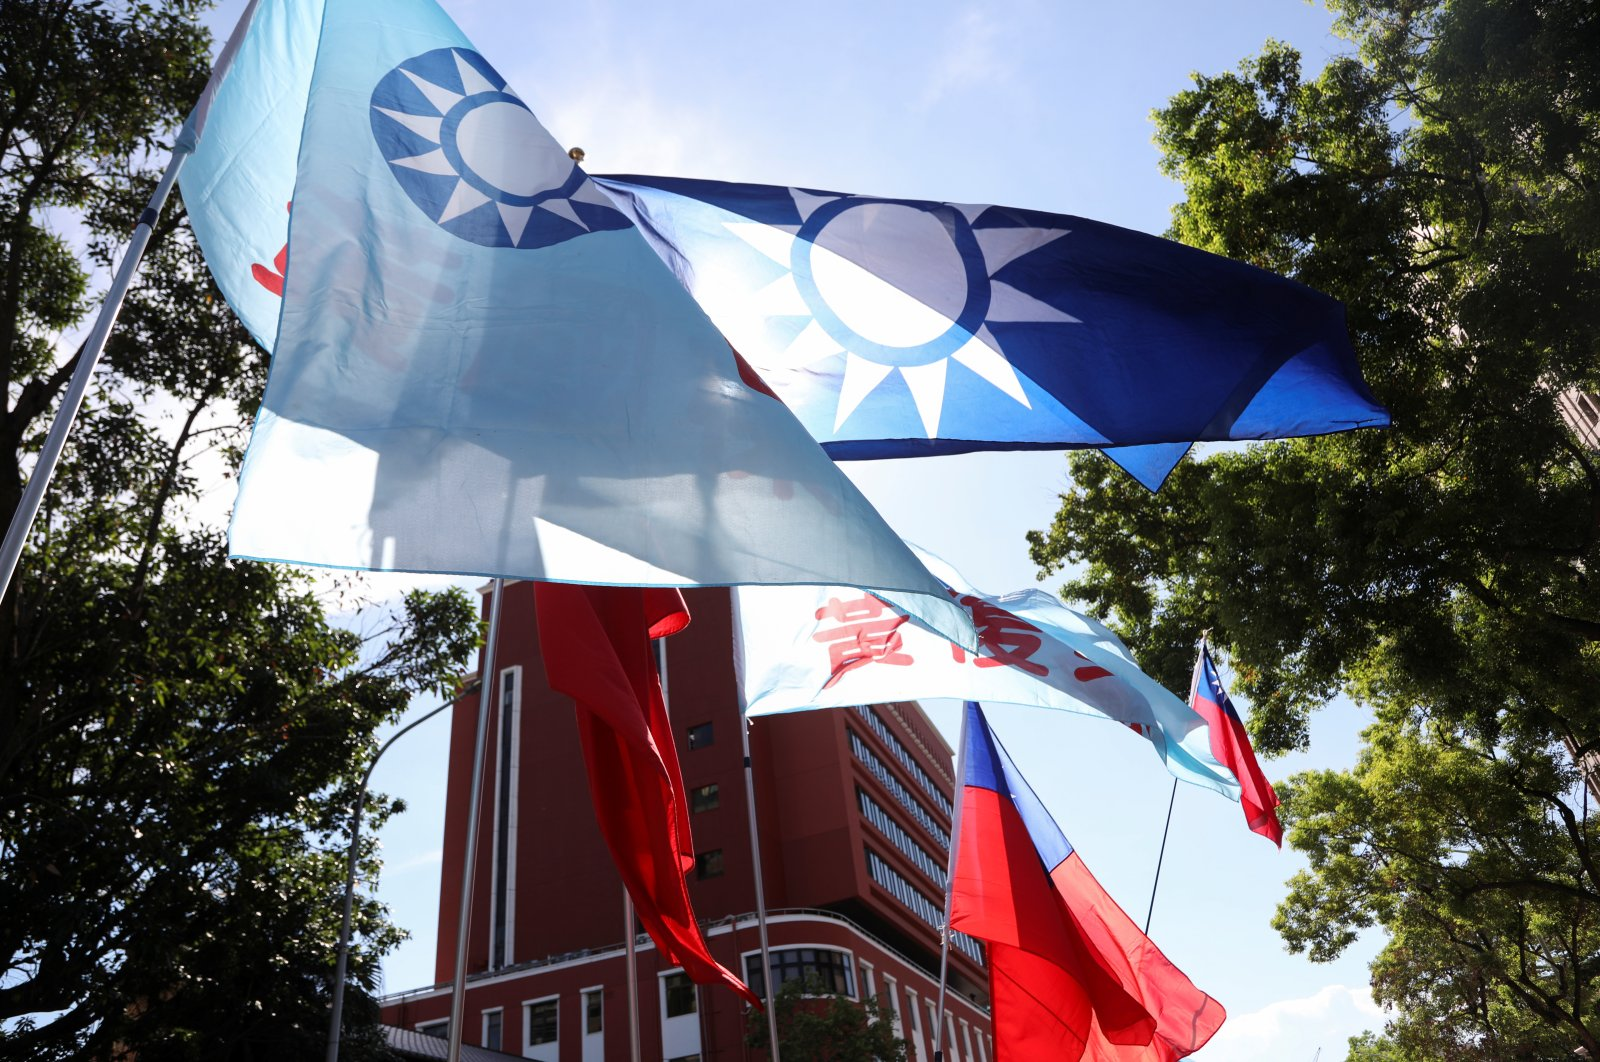 A Taiwan flag waves as people protest against the nomination of Chen Chu to head the Control Yuan, an independent government watchdog, outside the parliament building in Taipei, Taiwan, July 17, 2020. (Reuters Photo)